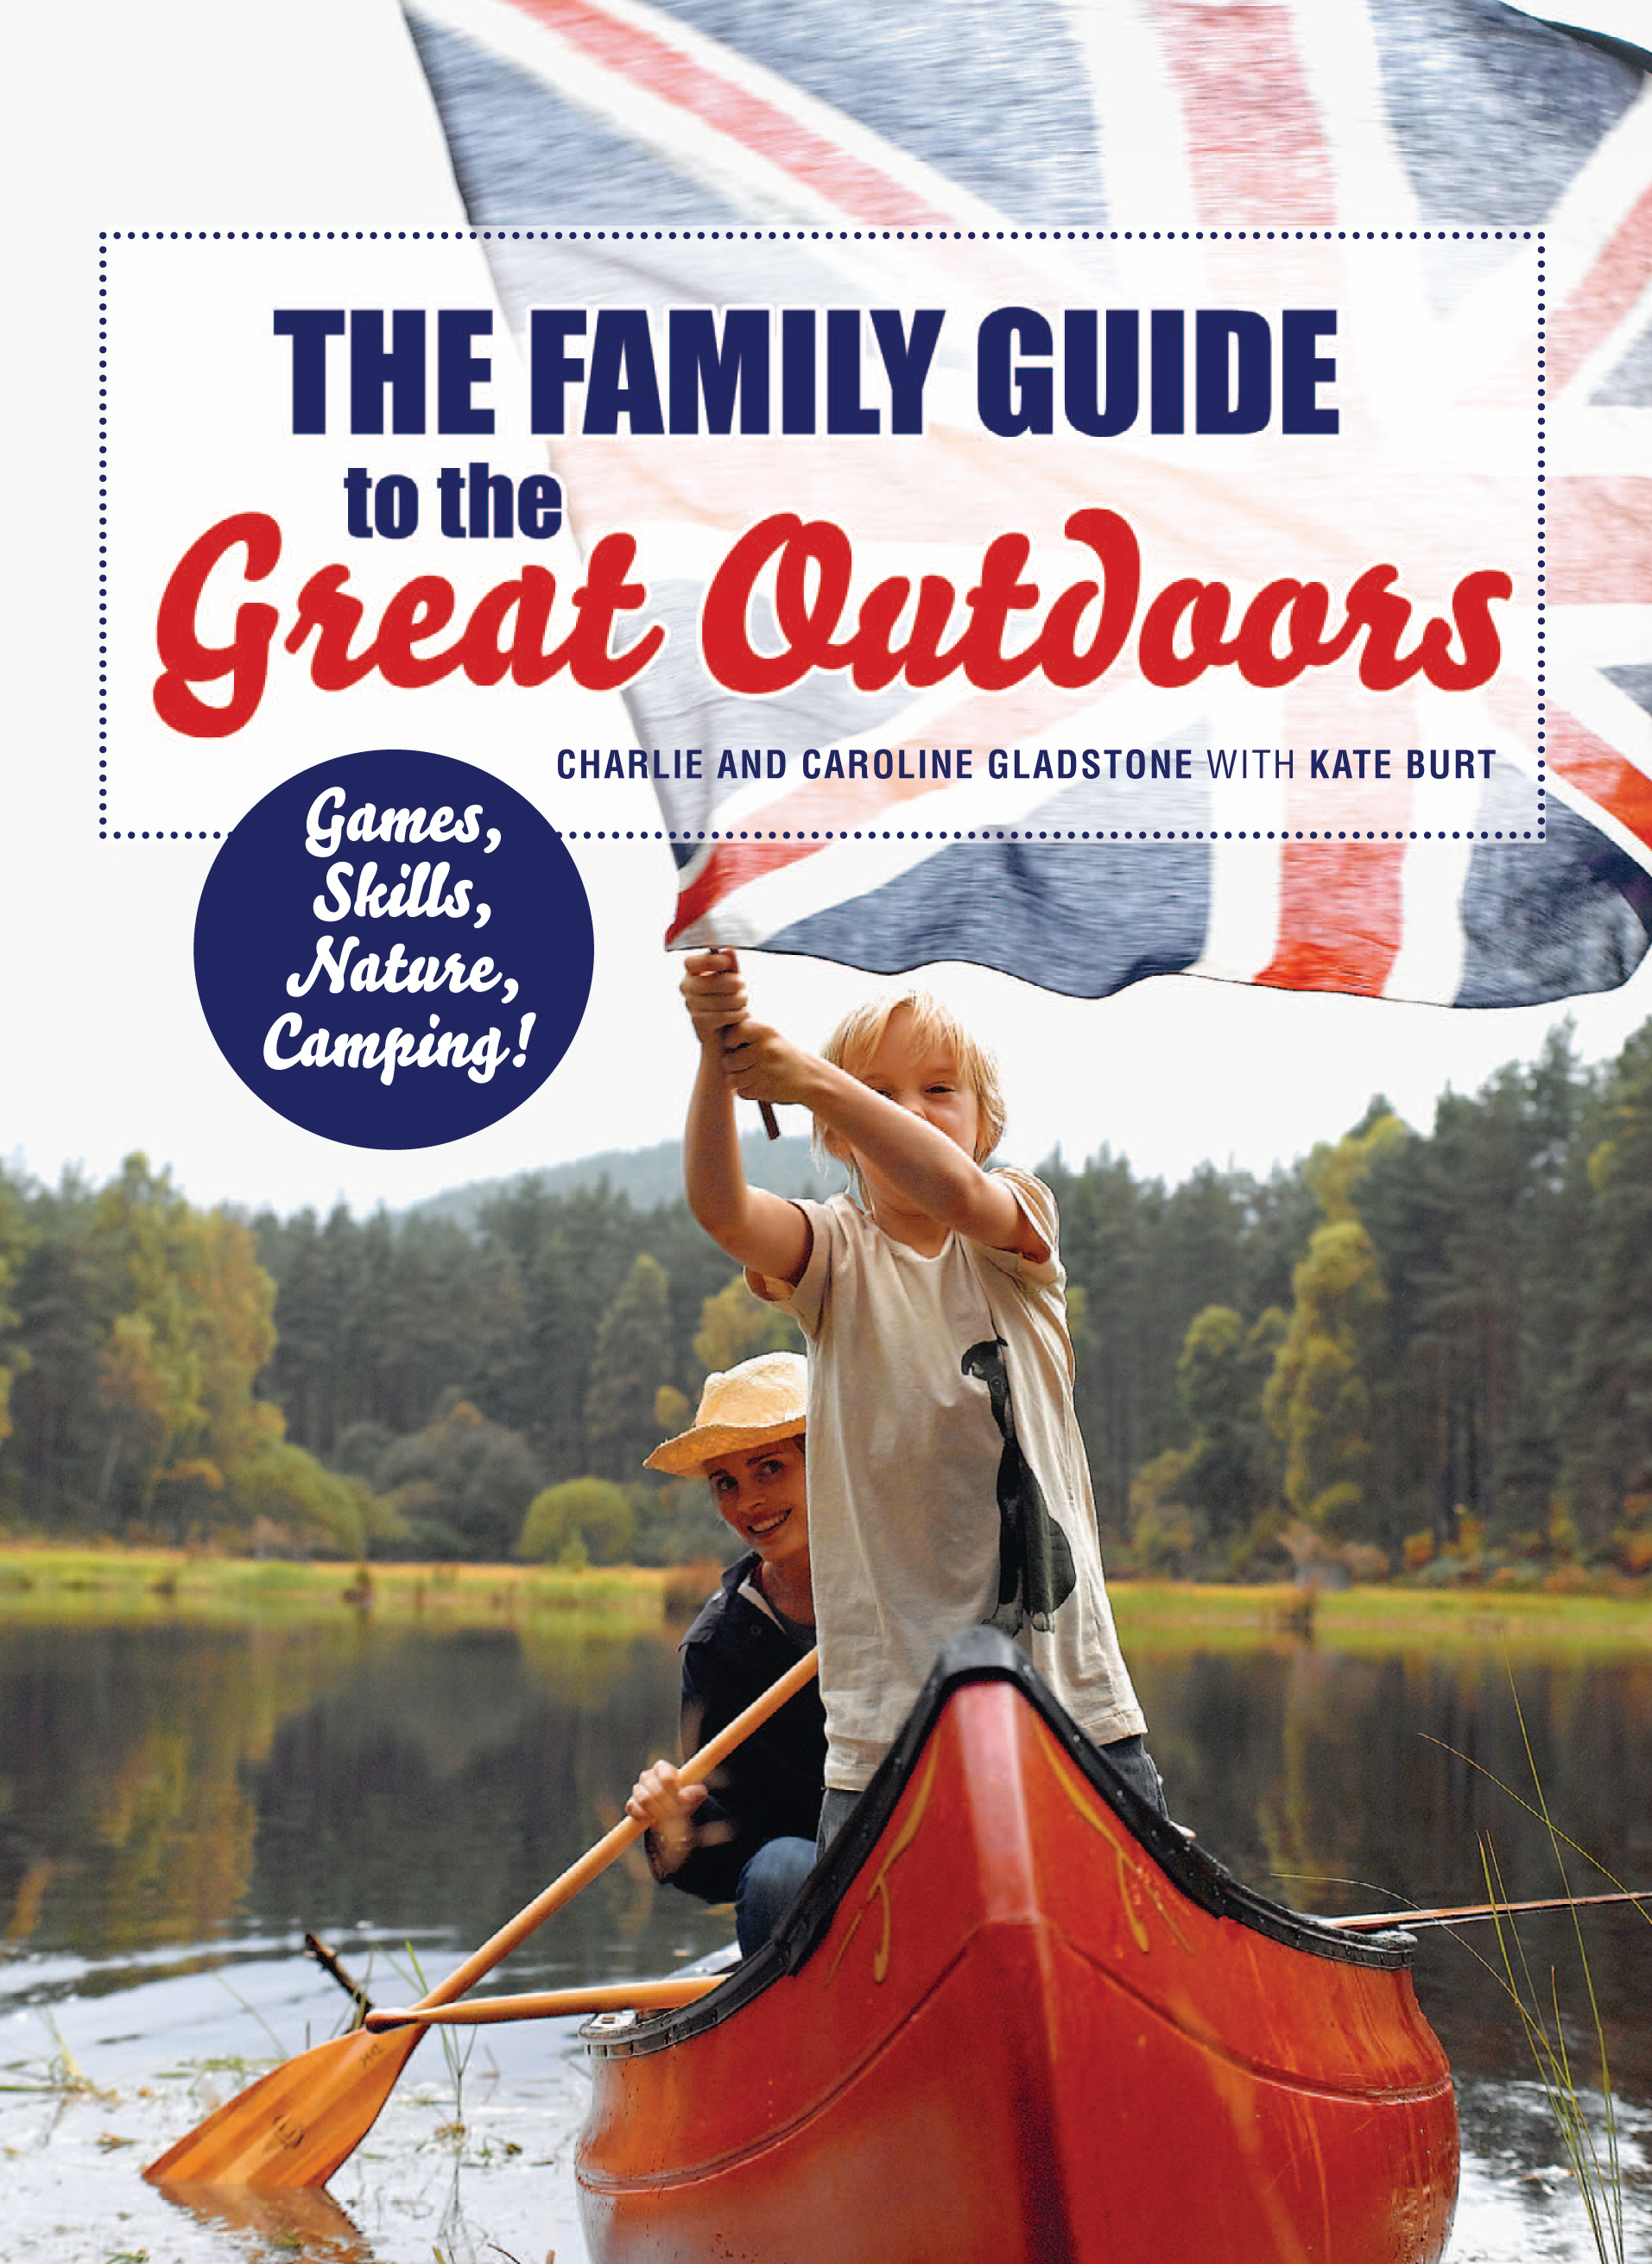 The Family Guide to the Great Outdoors